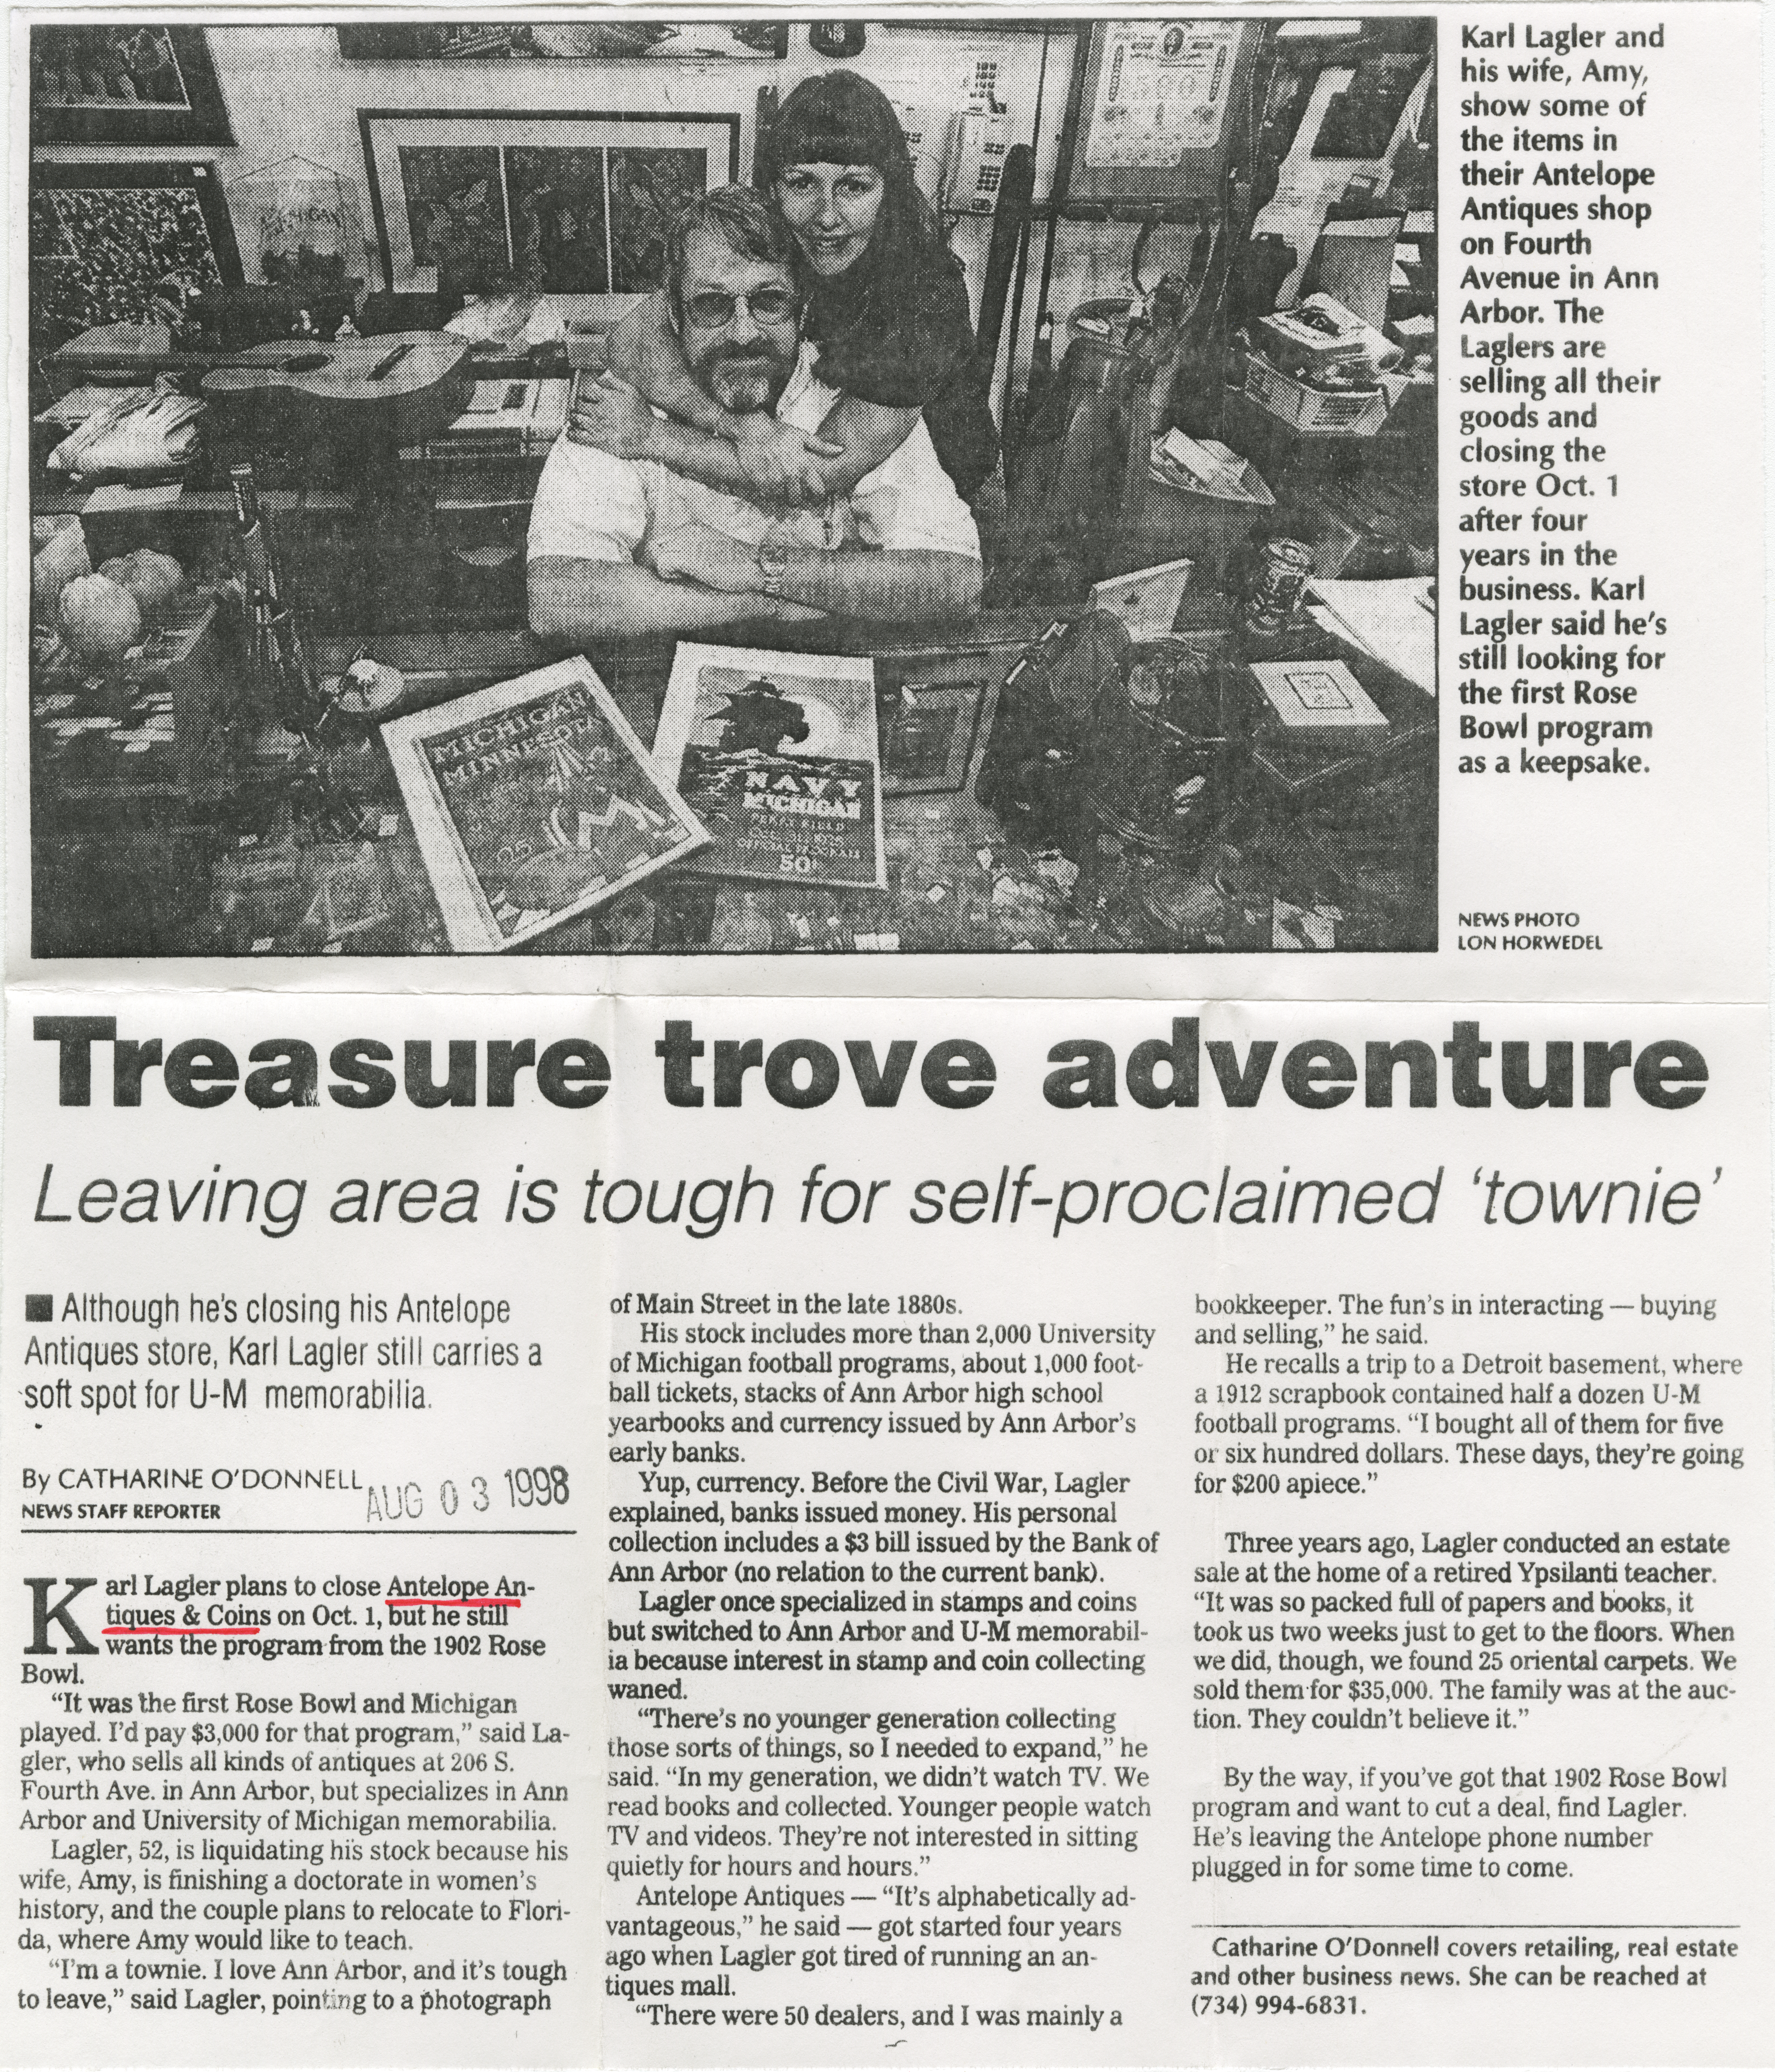 Treasure Trove Adventure image